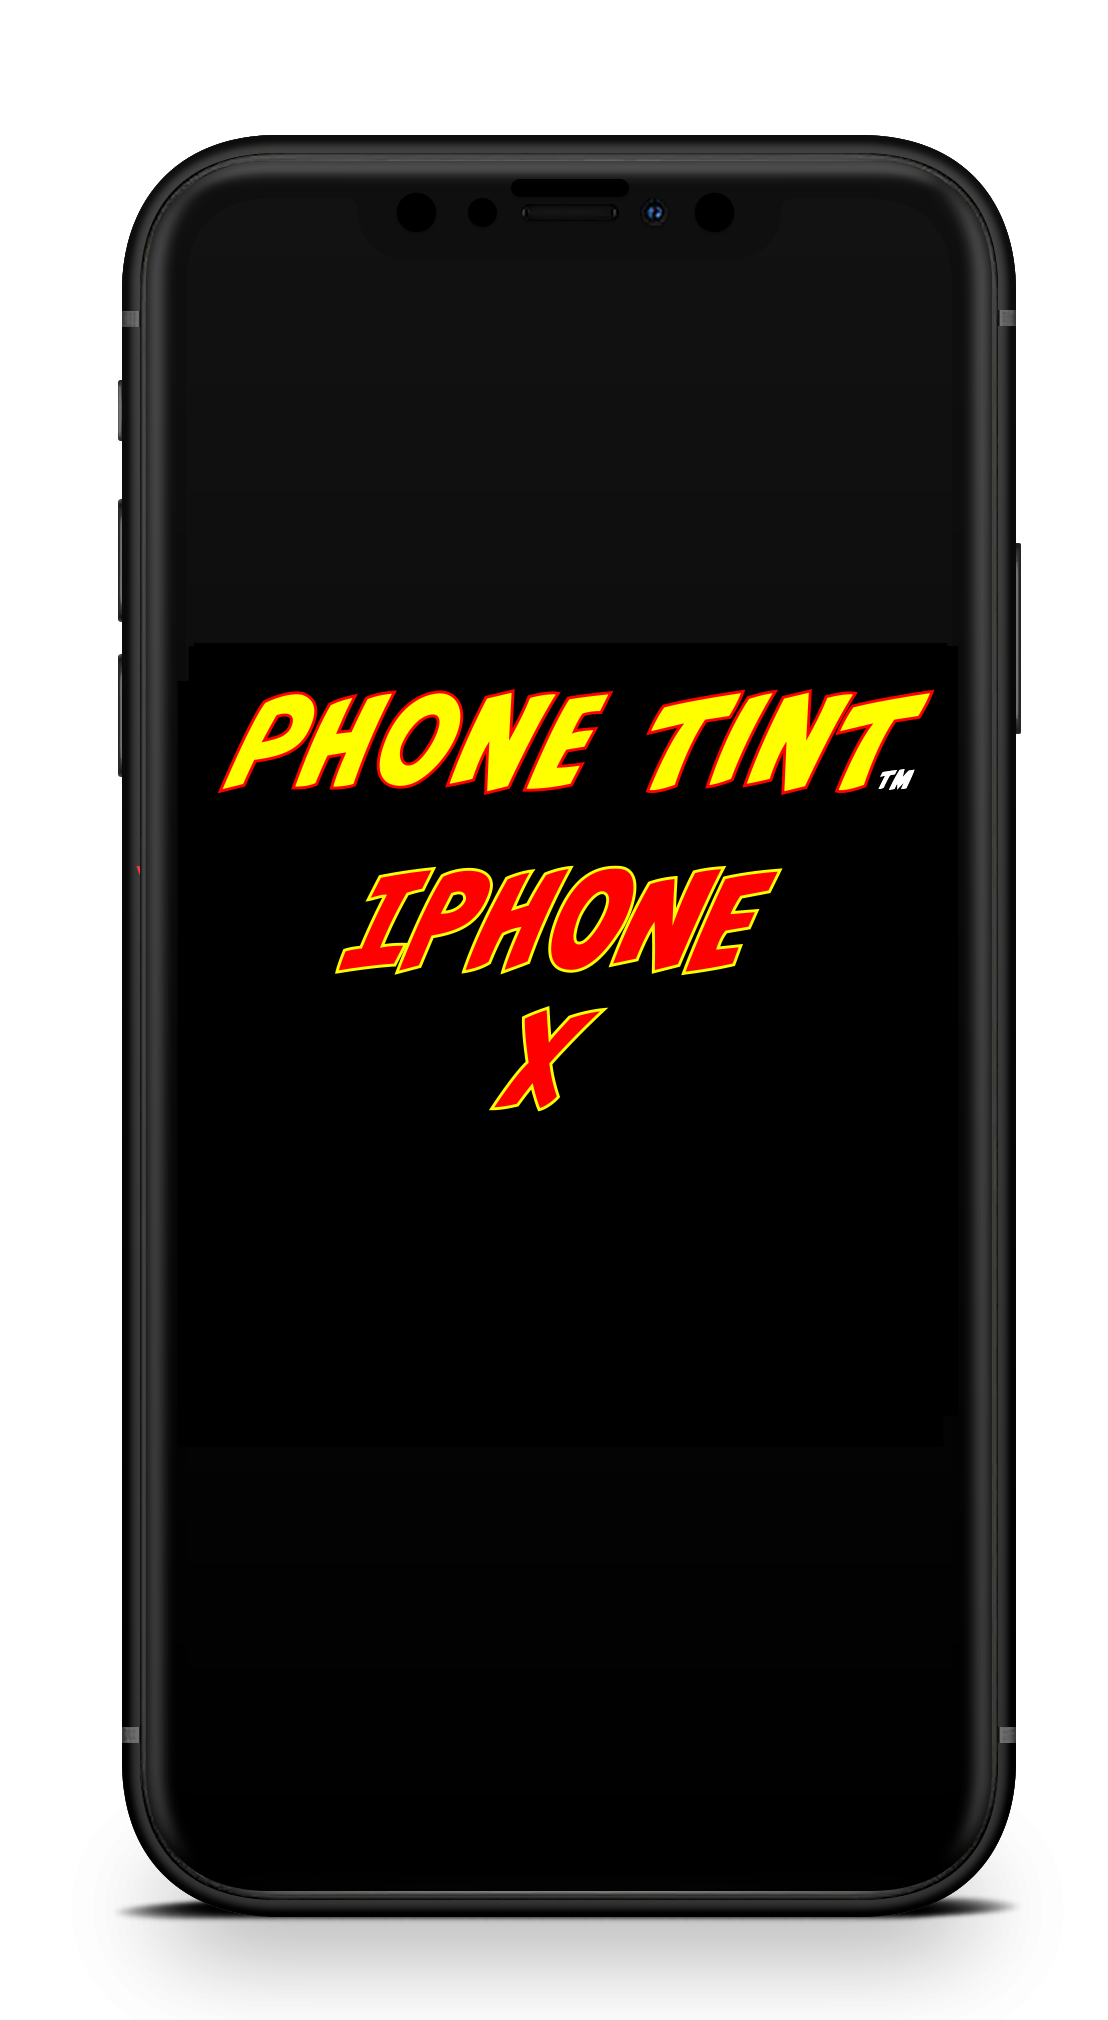 Iphone x phone tint privacy edge to edge tempered glass screen protector. SKINZ Edmonton